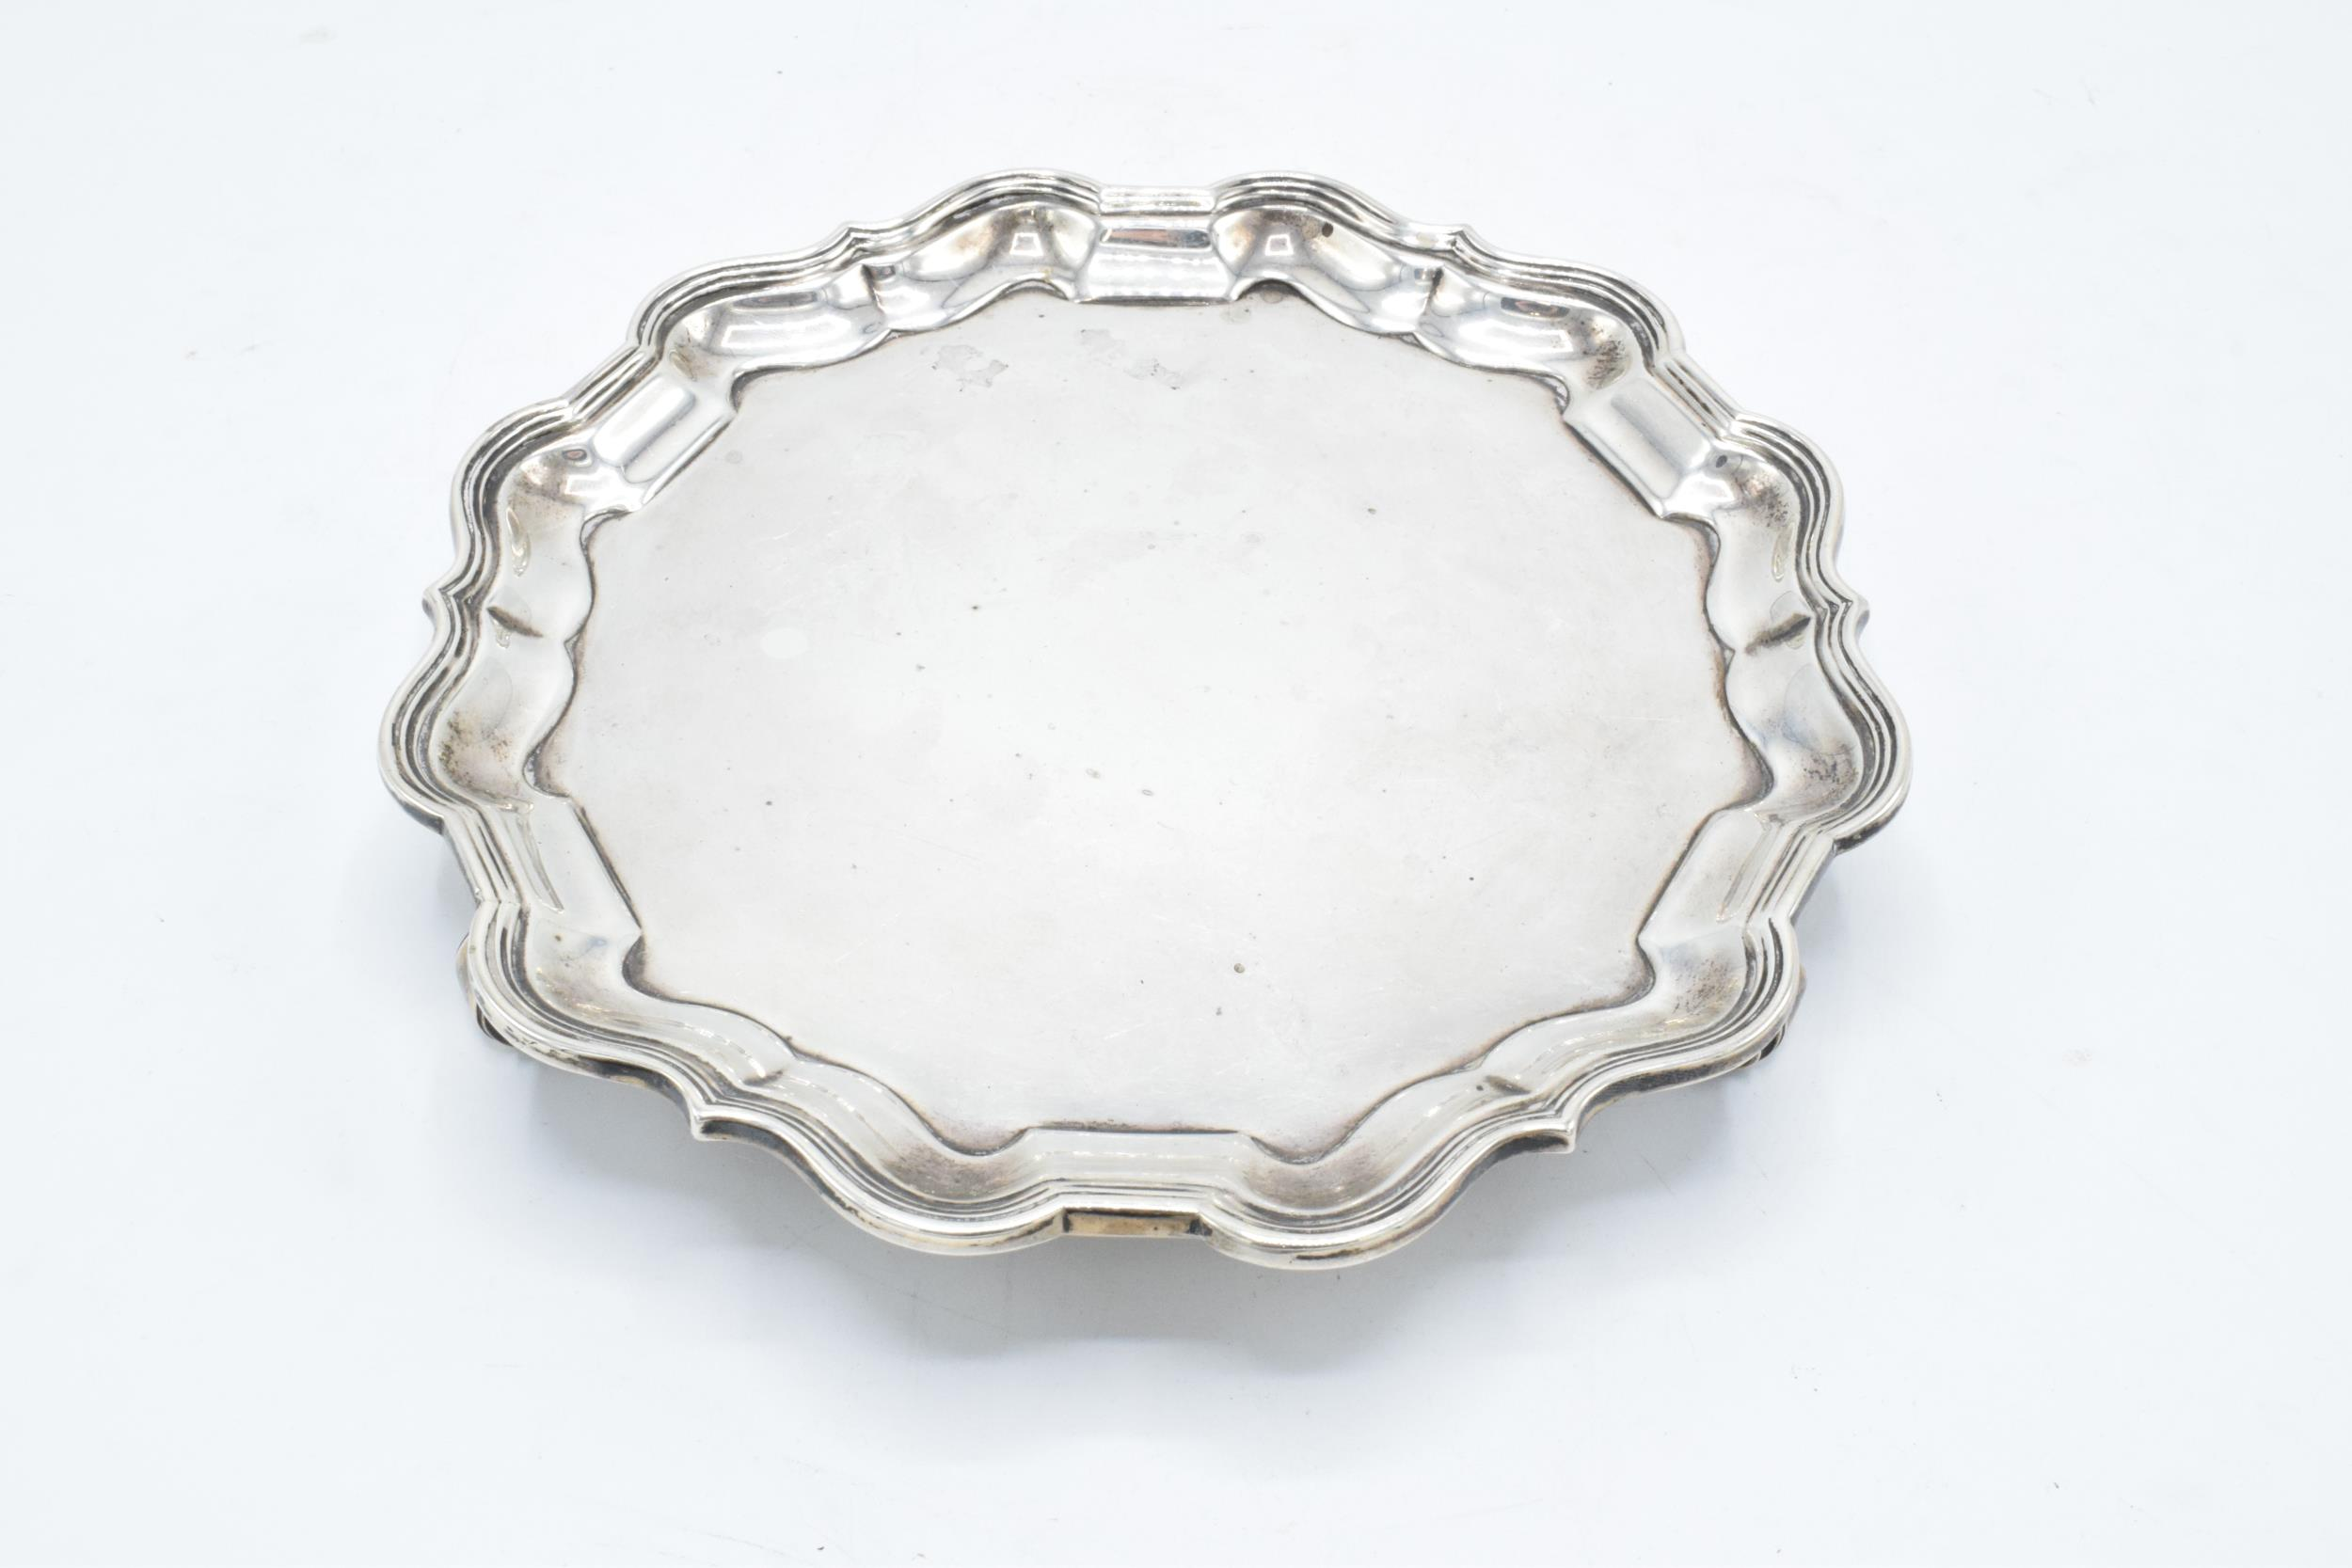 A hallmarked silver salver with shaped edge raised on three feet. Hallmarked for Sheffield 1926. - Image 2 of 6